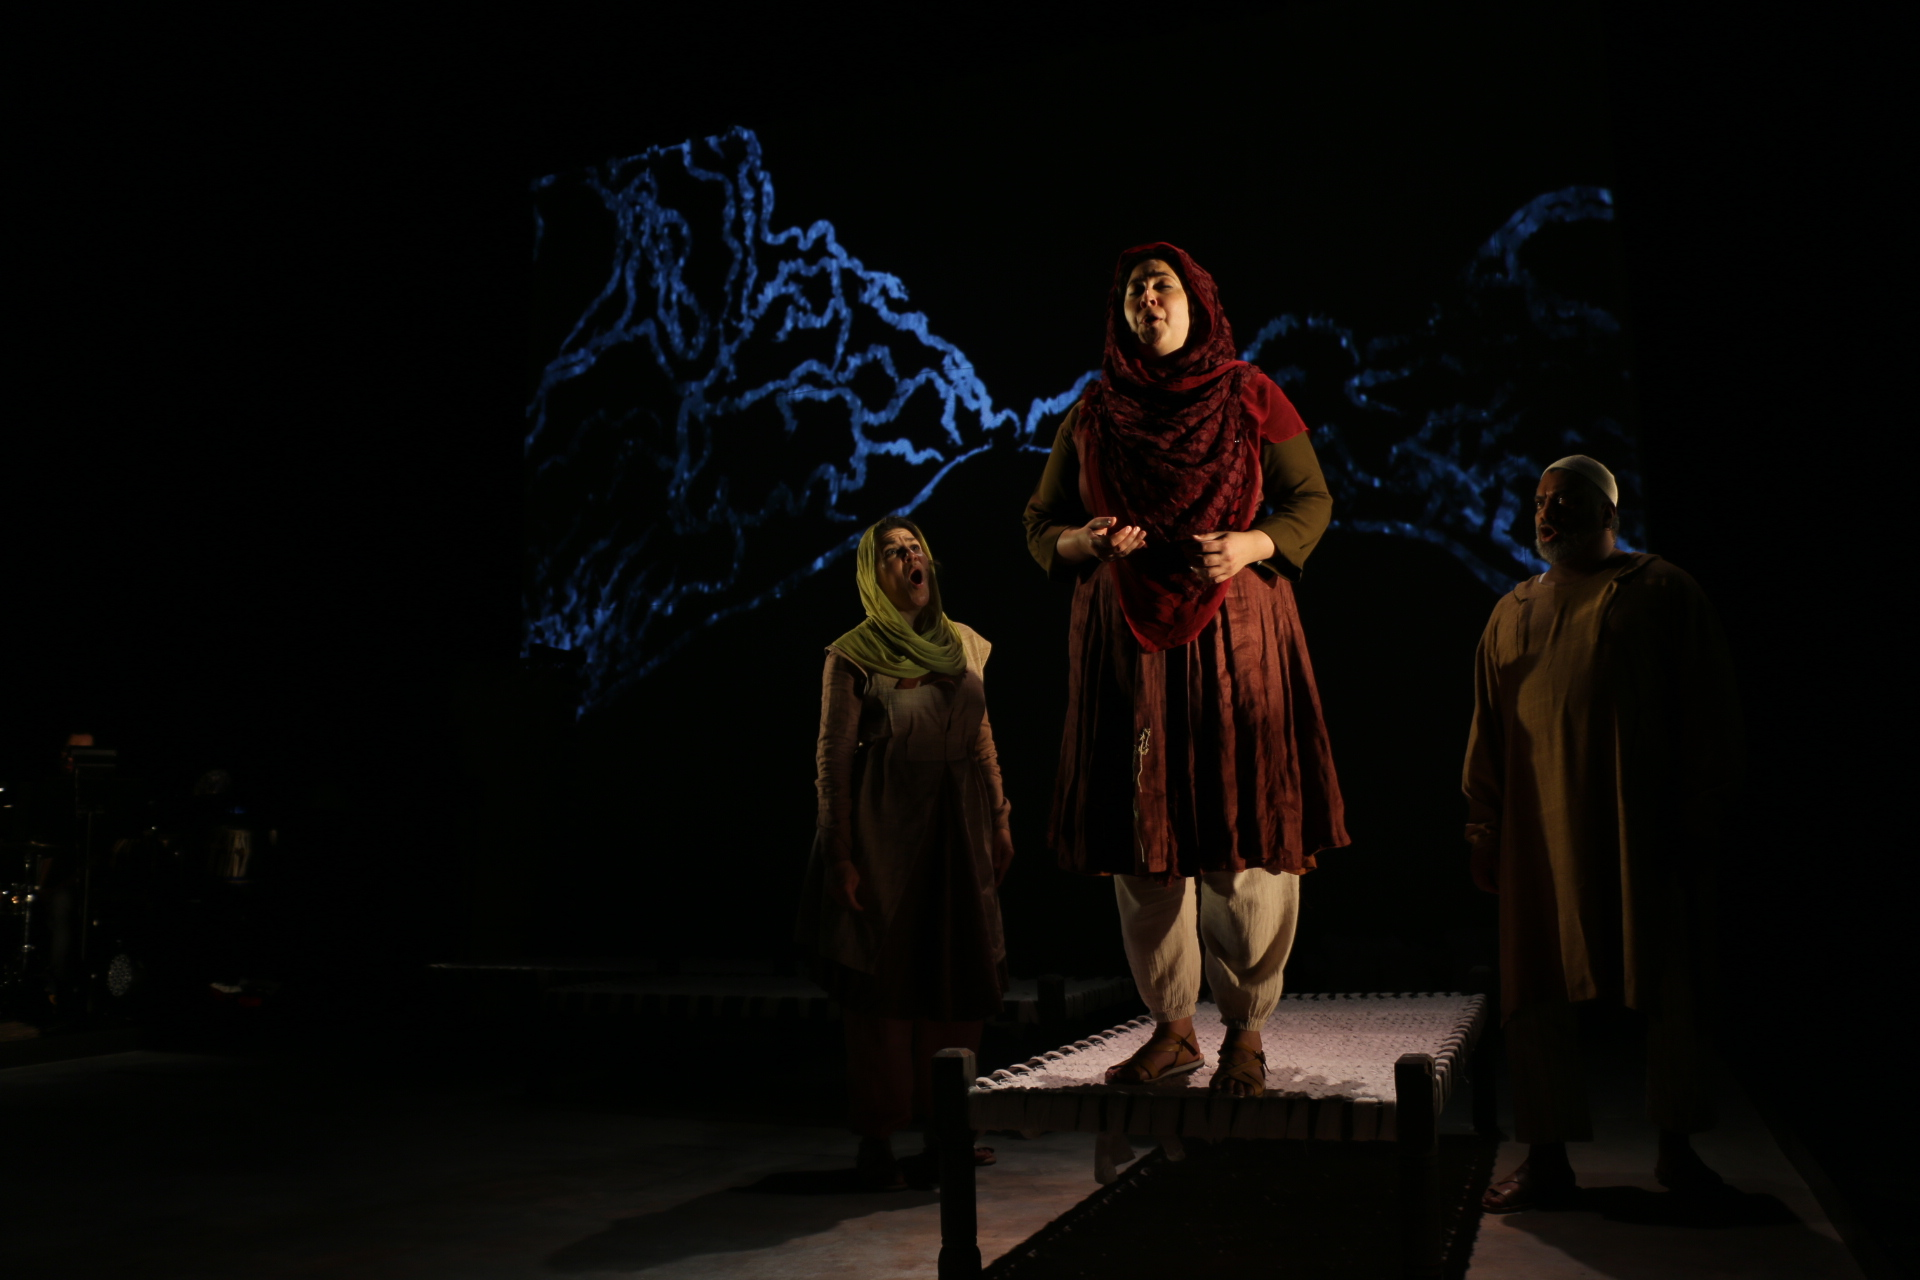 """Kamala Sankaram at rehearsal in the Redcat Theatre. She is the composer and the star of the opera """"Thumbprint."""" Photo credit: Adriana Cargill"""